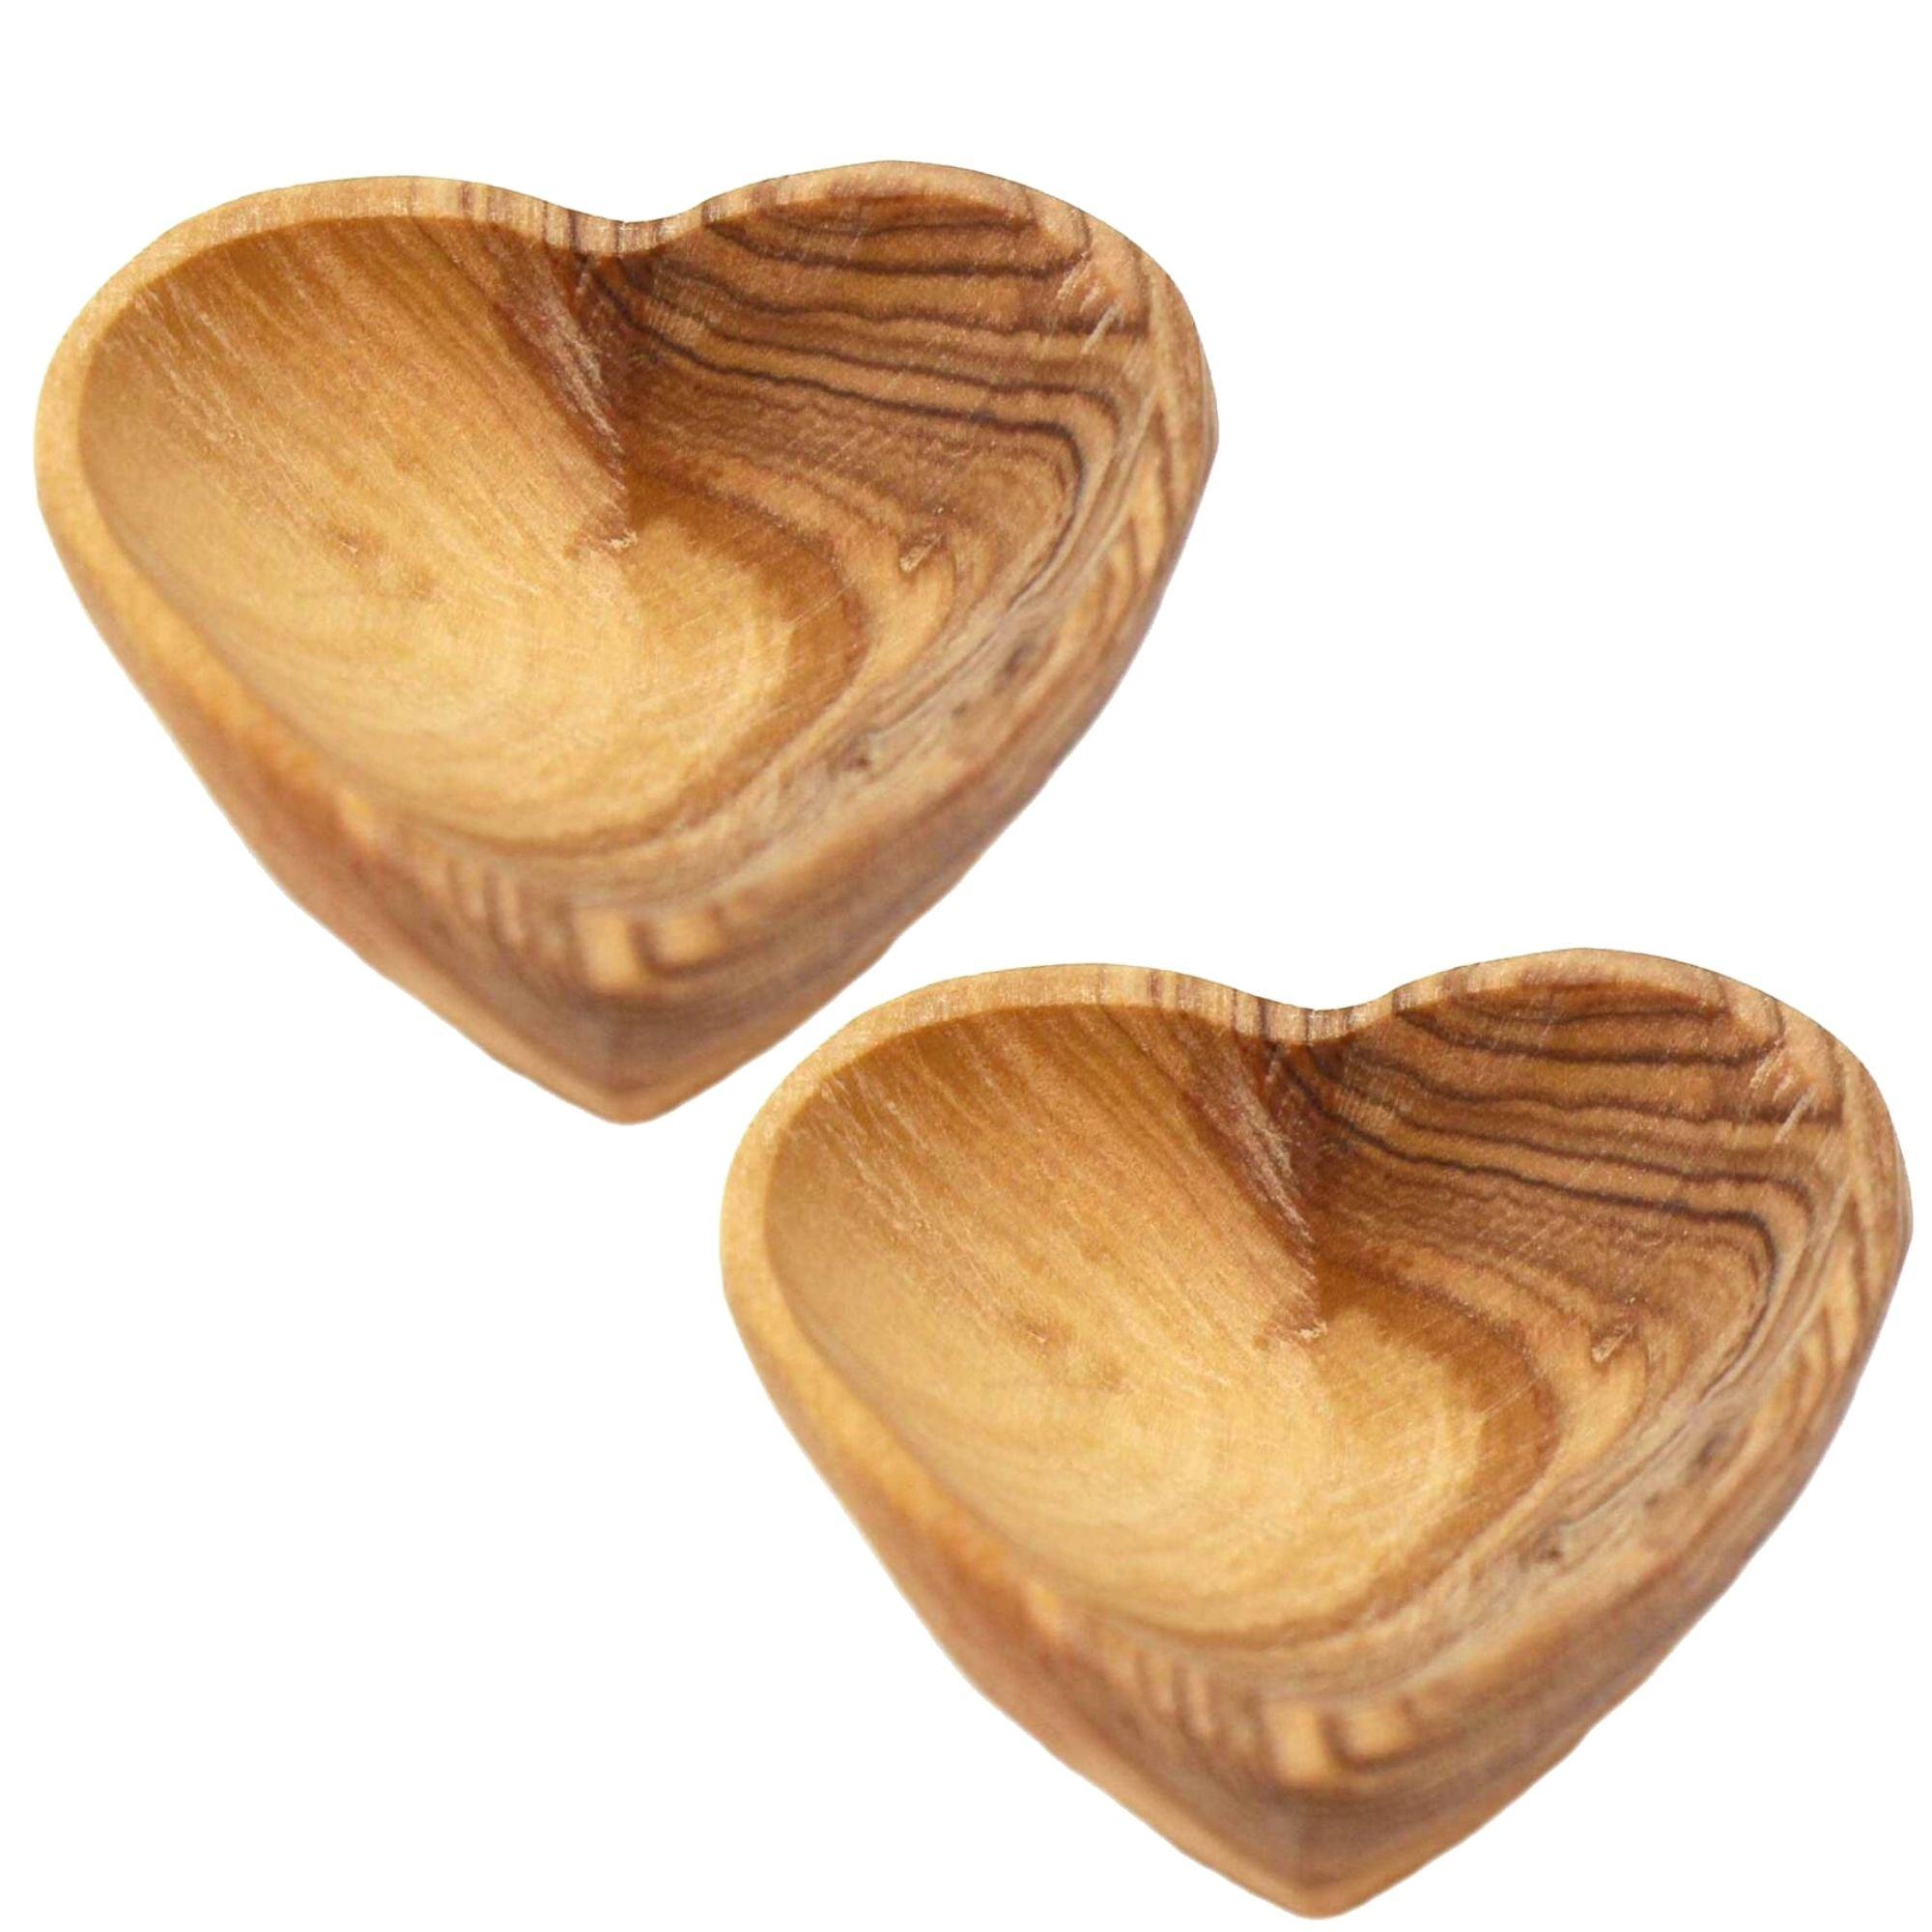 Petite Olive Wood Heart Bowls - Pack of 2